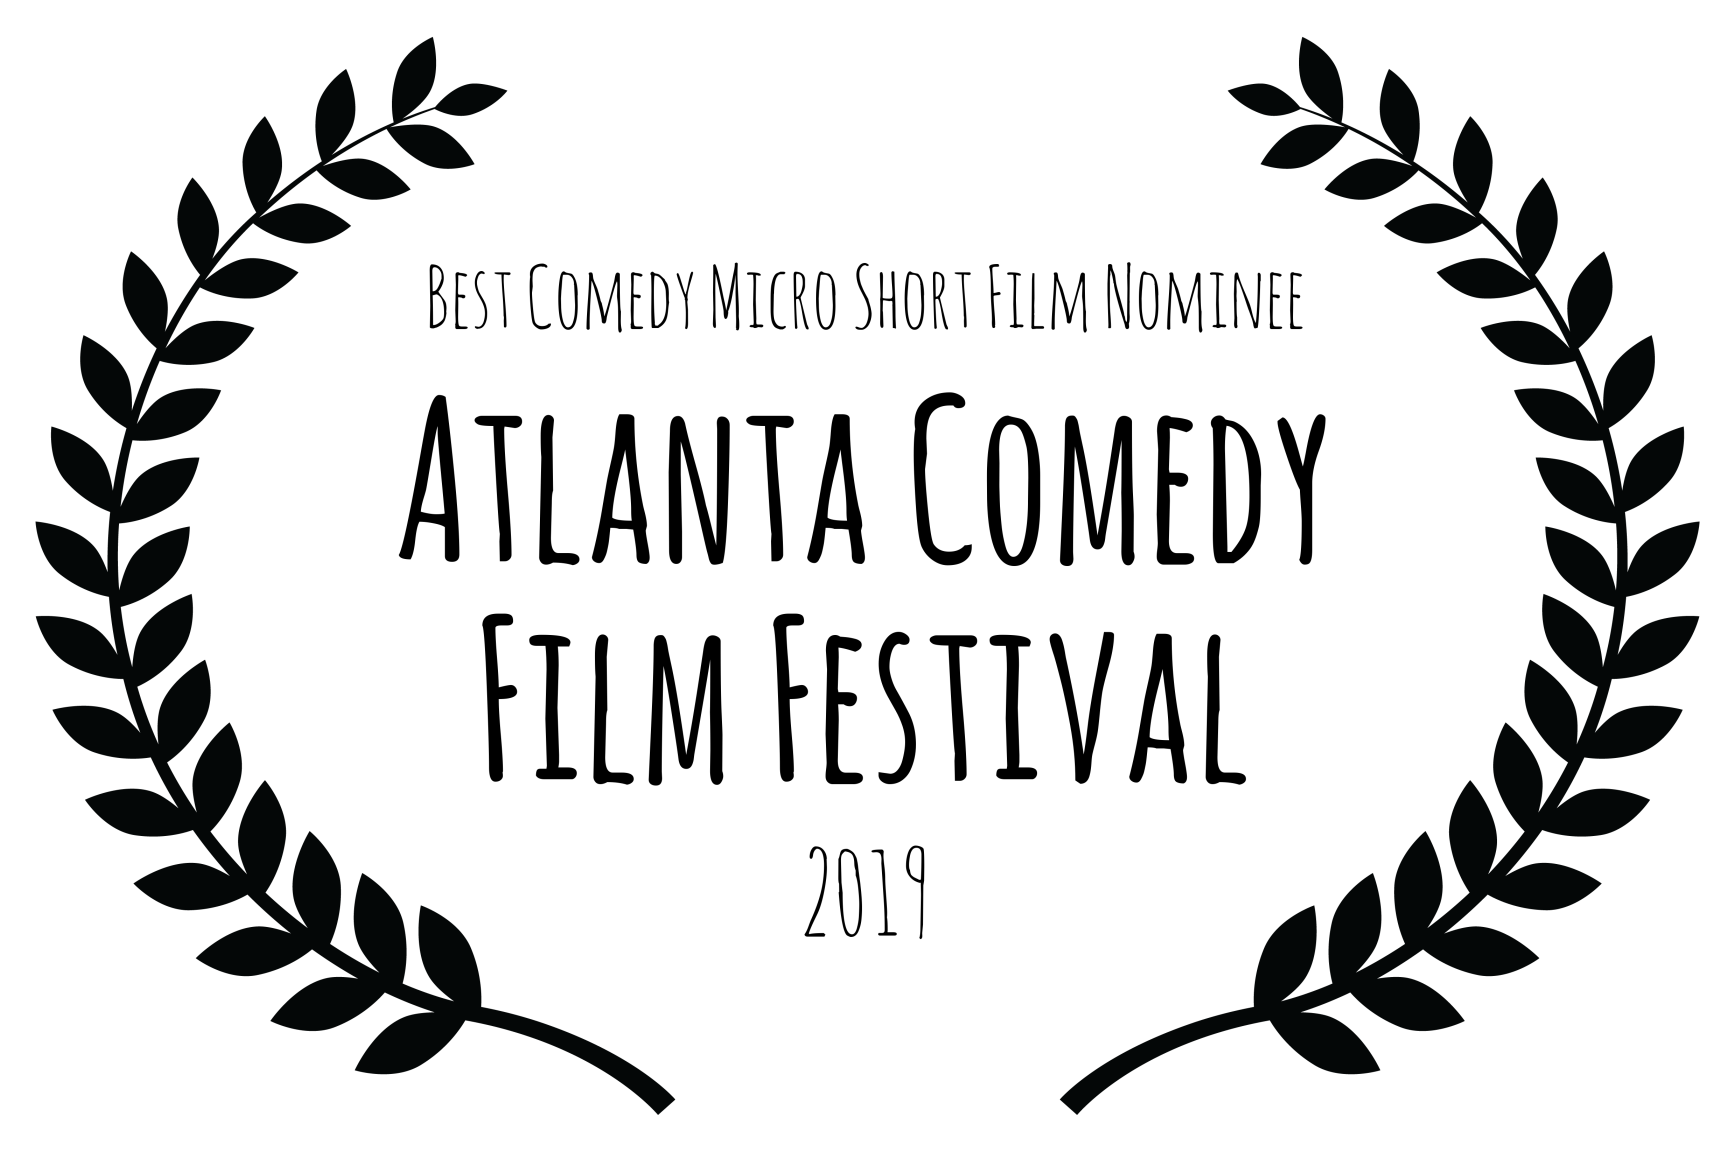 Best Comedy Micro Short Film Nominee - A